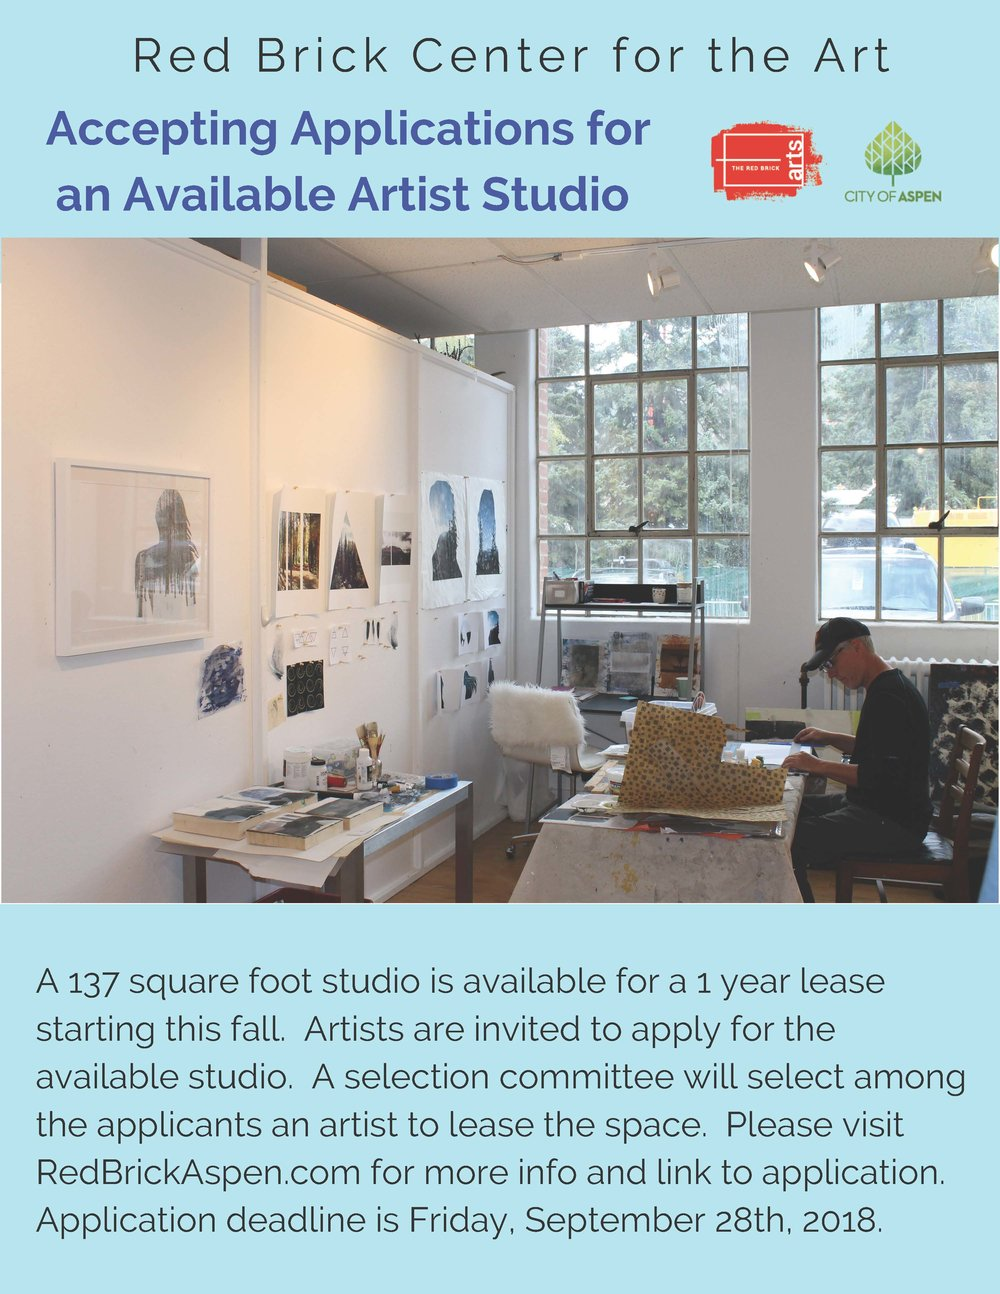 Available Studio - Call for Artist Applicants jpeg.jpg